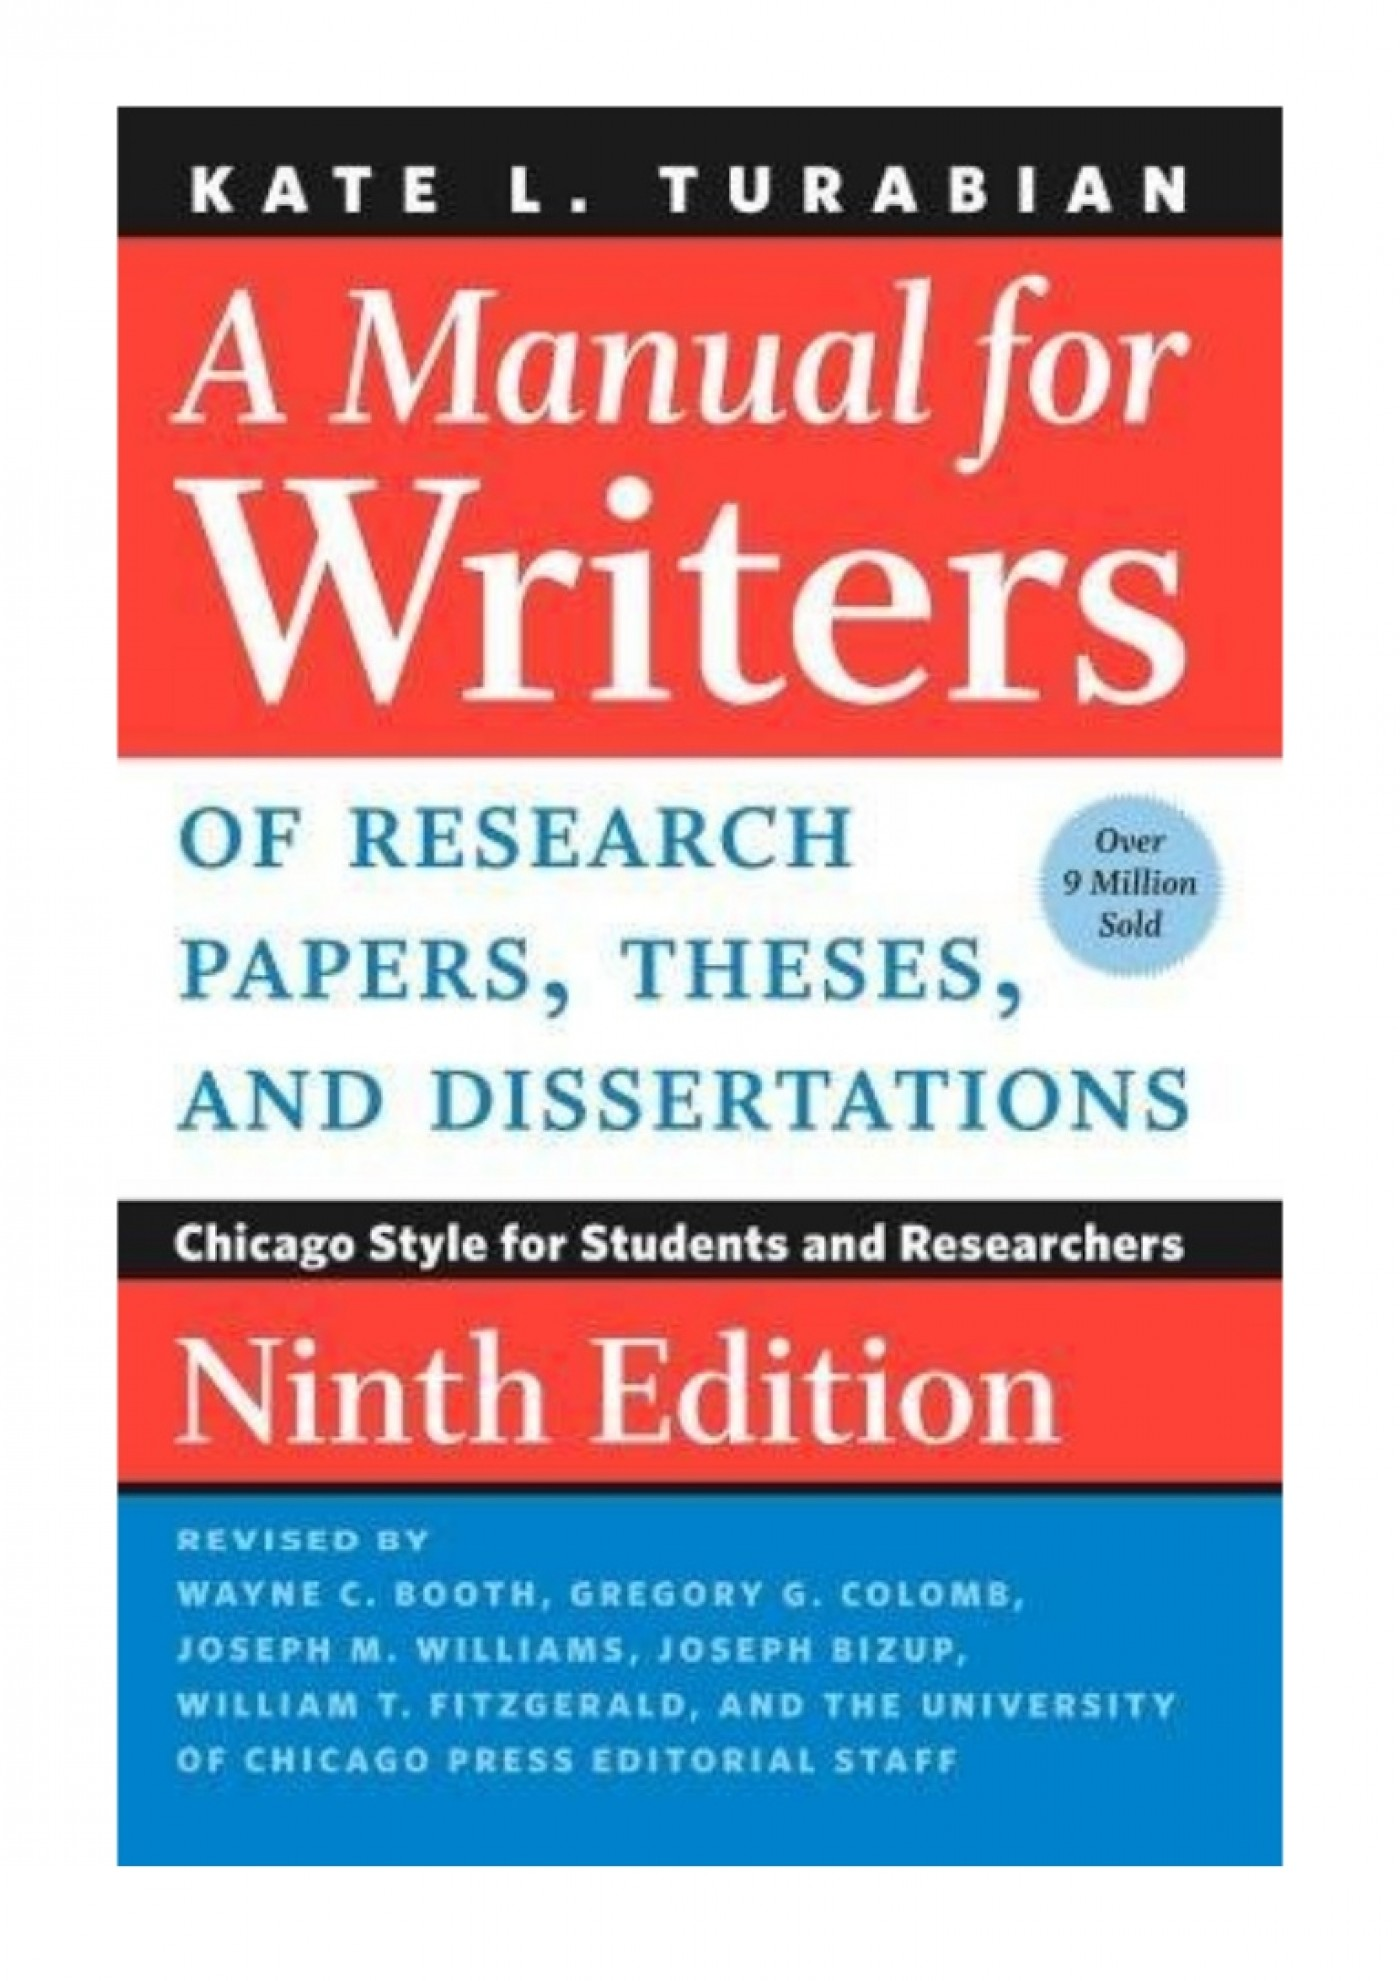 010 Manual For Writers Of Research Papers Theses And Dissertations Paper 022643057x Amanualforwritersofresearchpapersthesesanddissertationsnintheditionbykatel Thumbnail Magnificent A Amazon 9th Edition Pdf 8th 13 1400